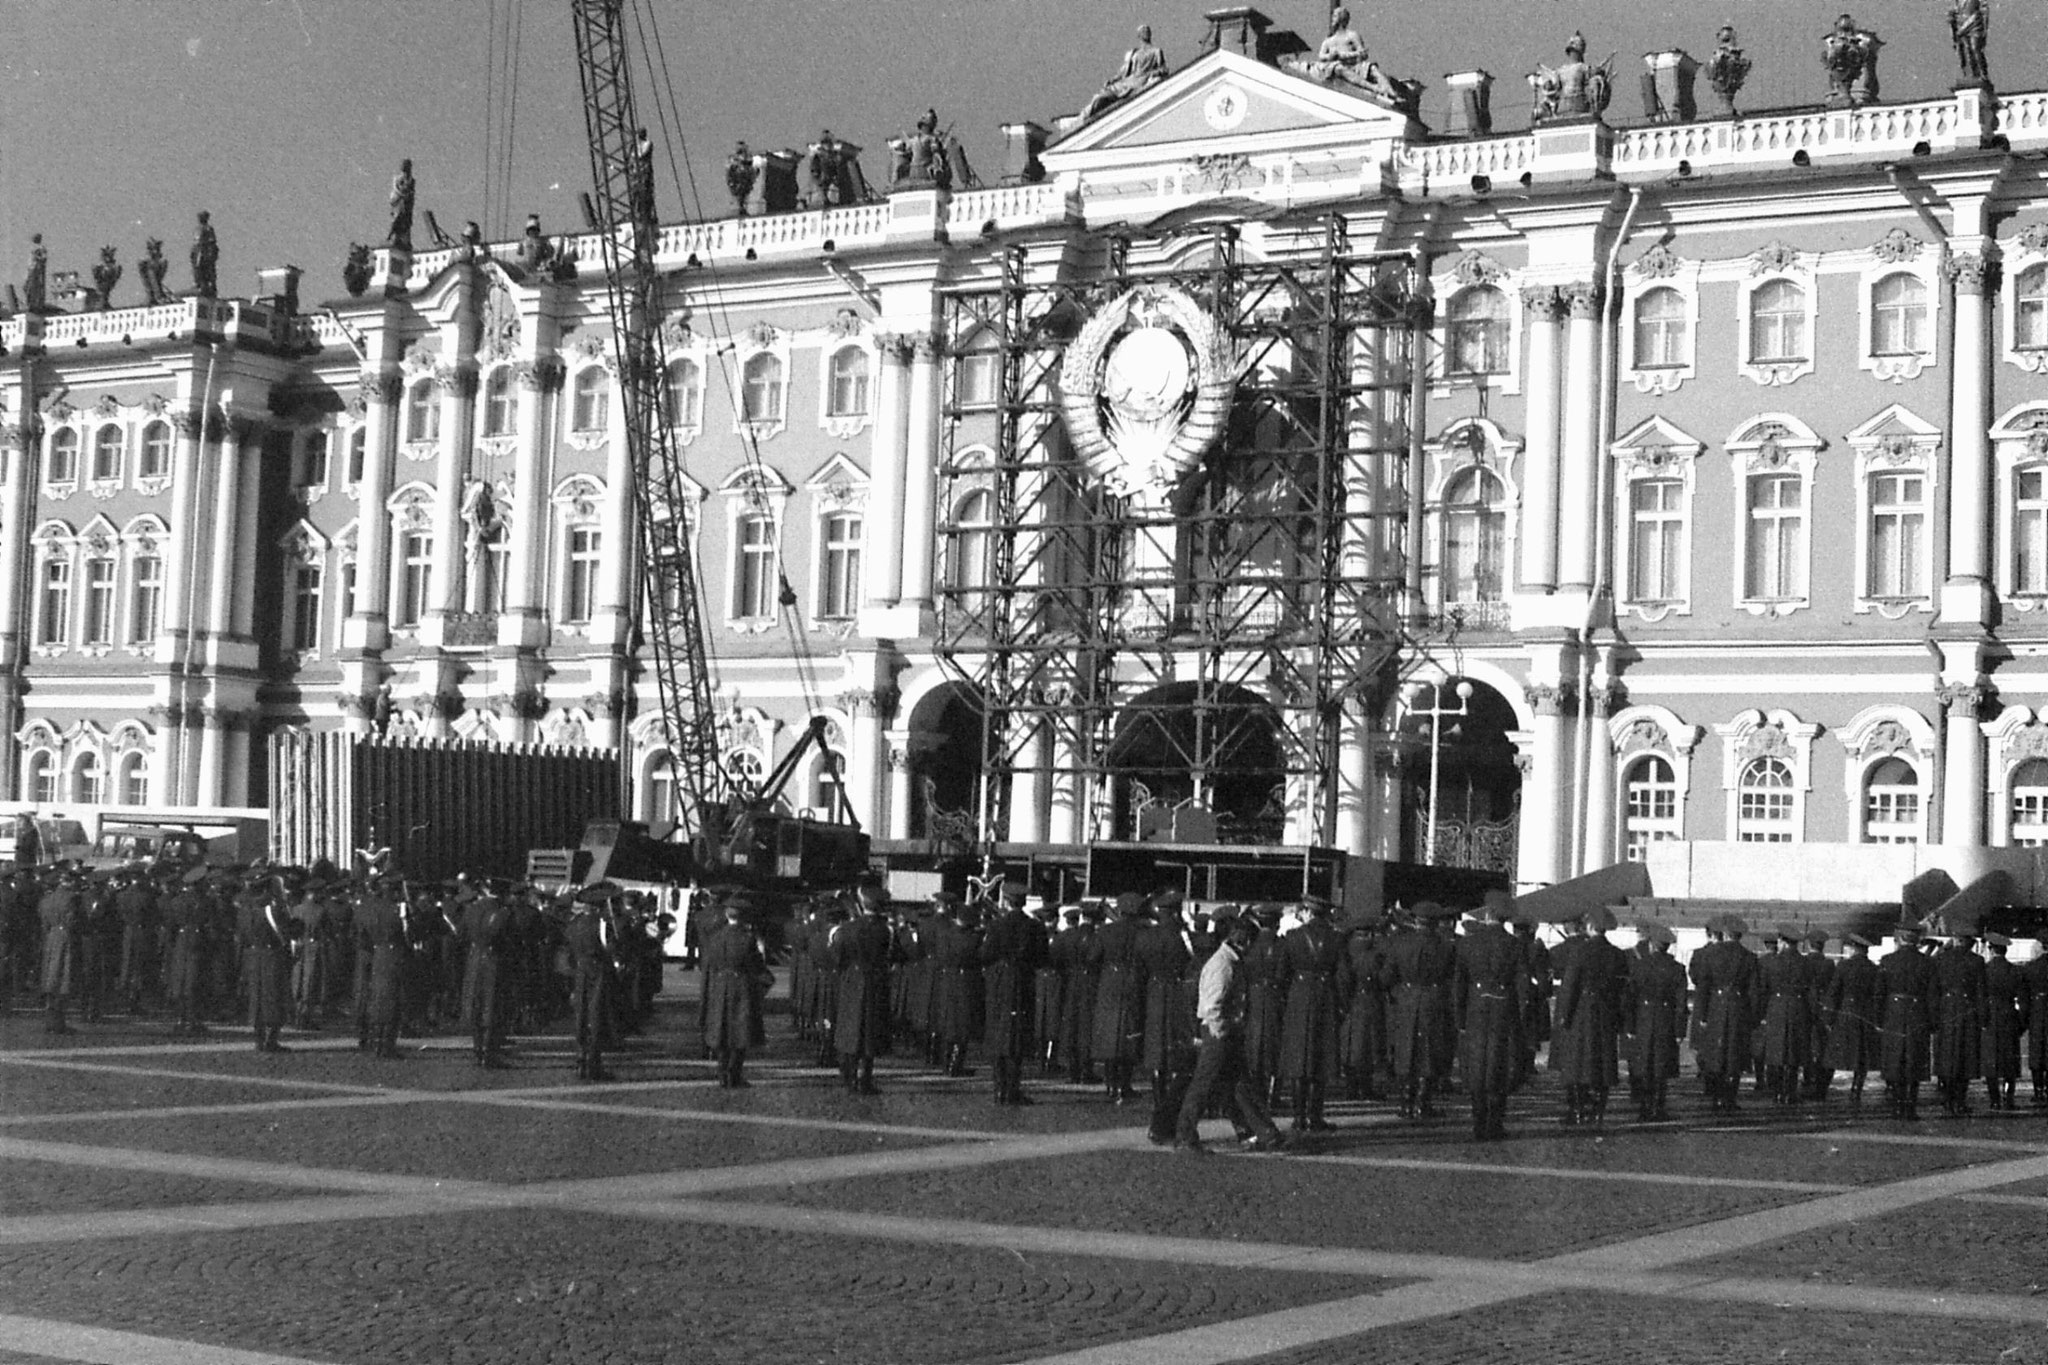 13/10/1988: 5: band at Winter Palace Leningrad